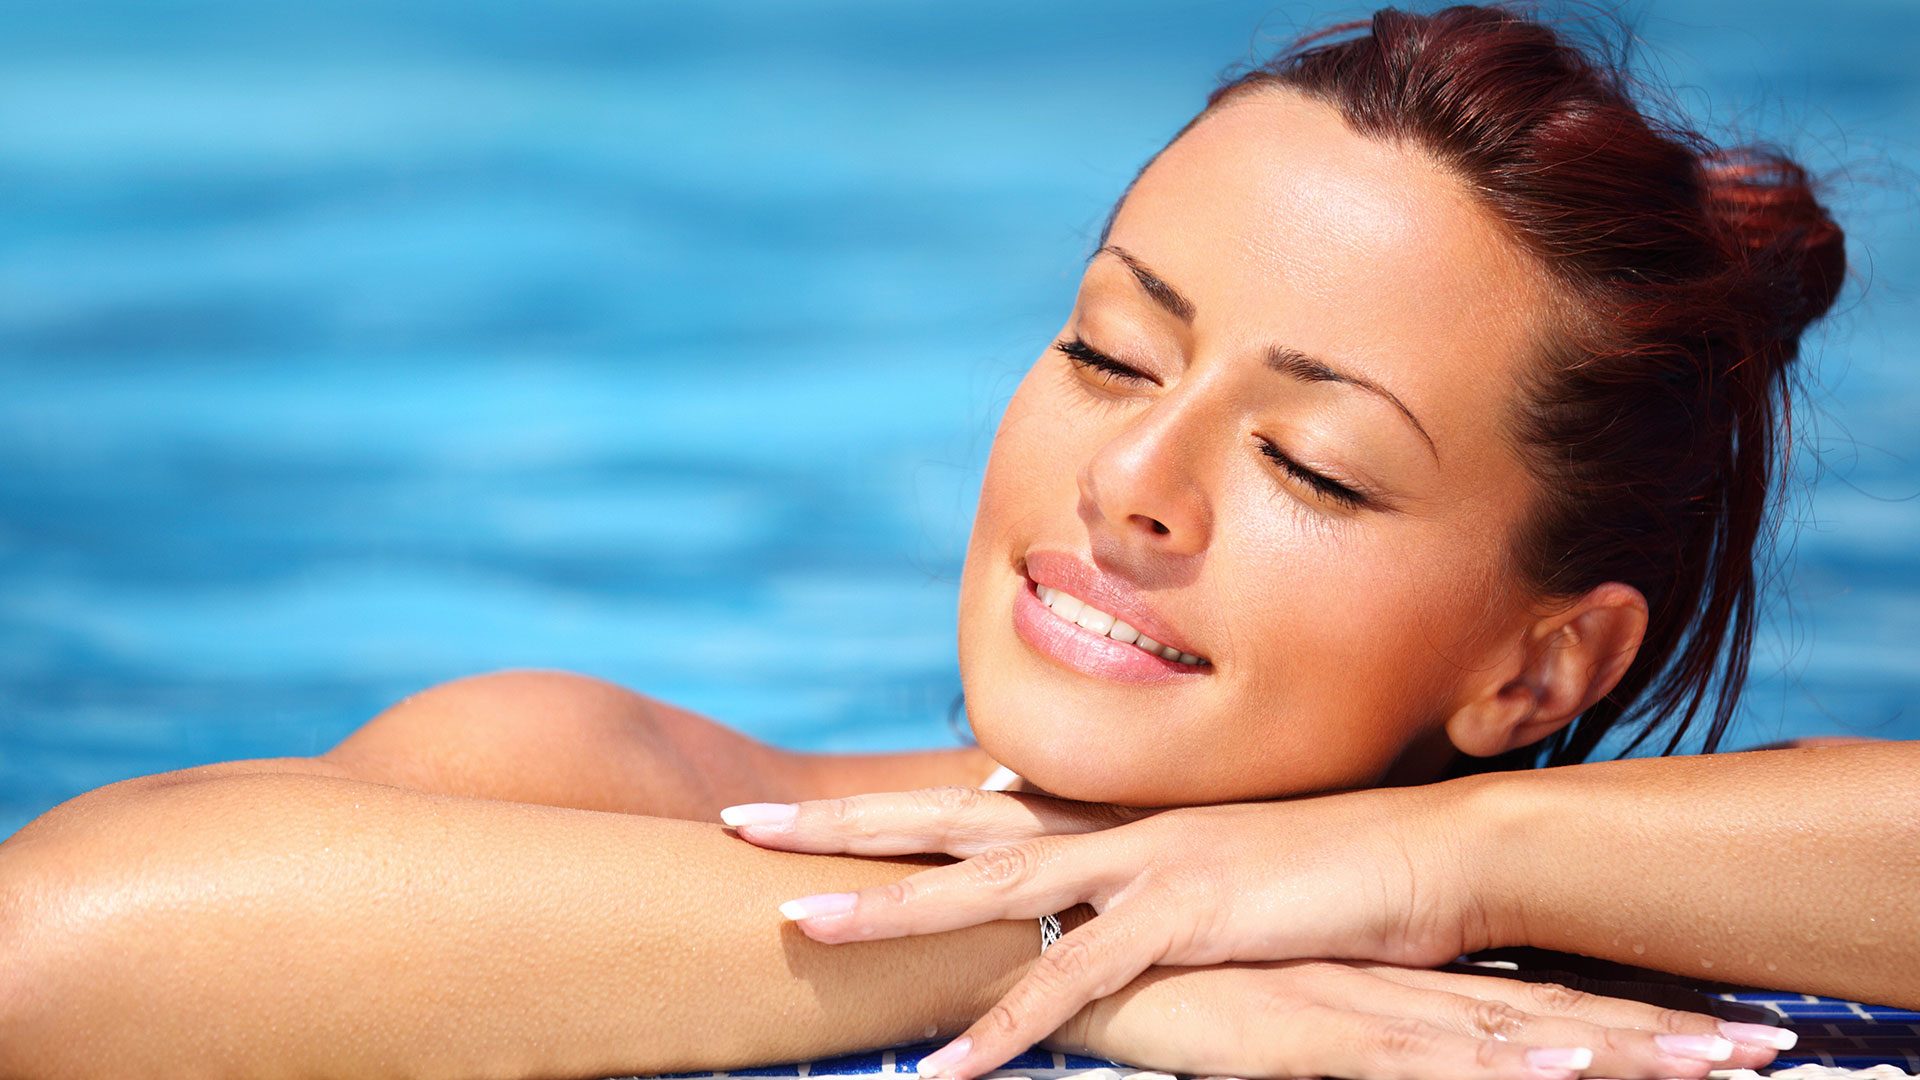 Summer Skin Care Tips From Dermatologists